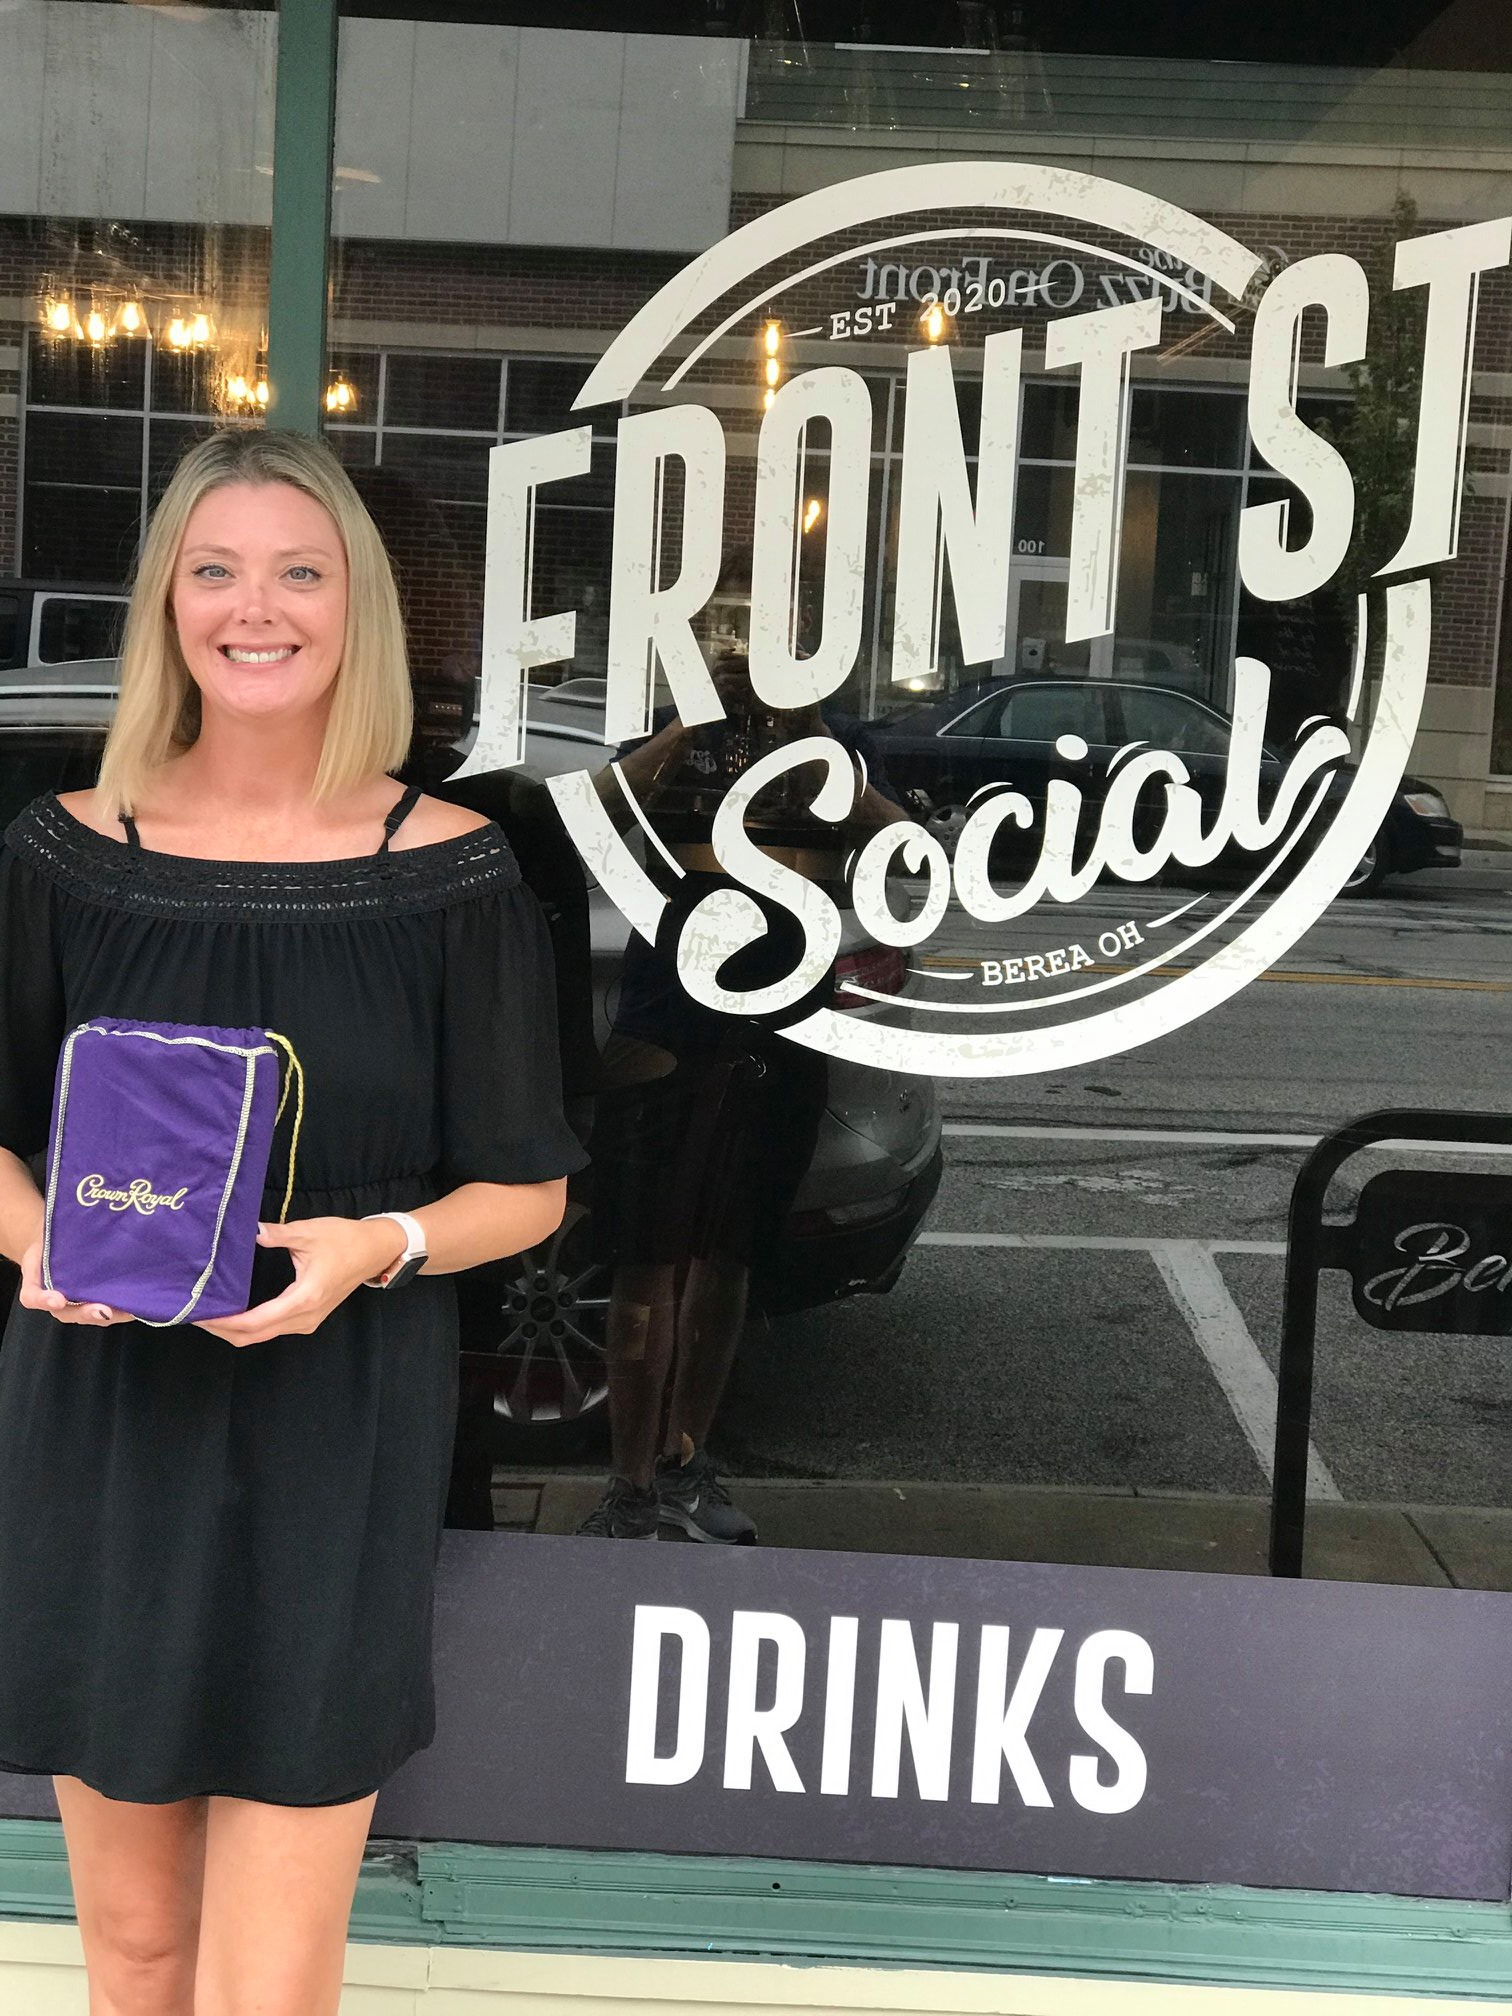 So excited to network with local Berea business professionals at Front St Social next week! This Brand Ambassador delivered over 100 invitations today 🥳 Who's representing you?